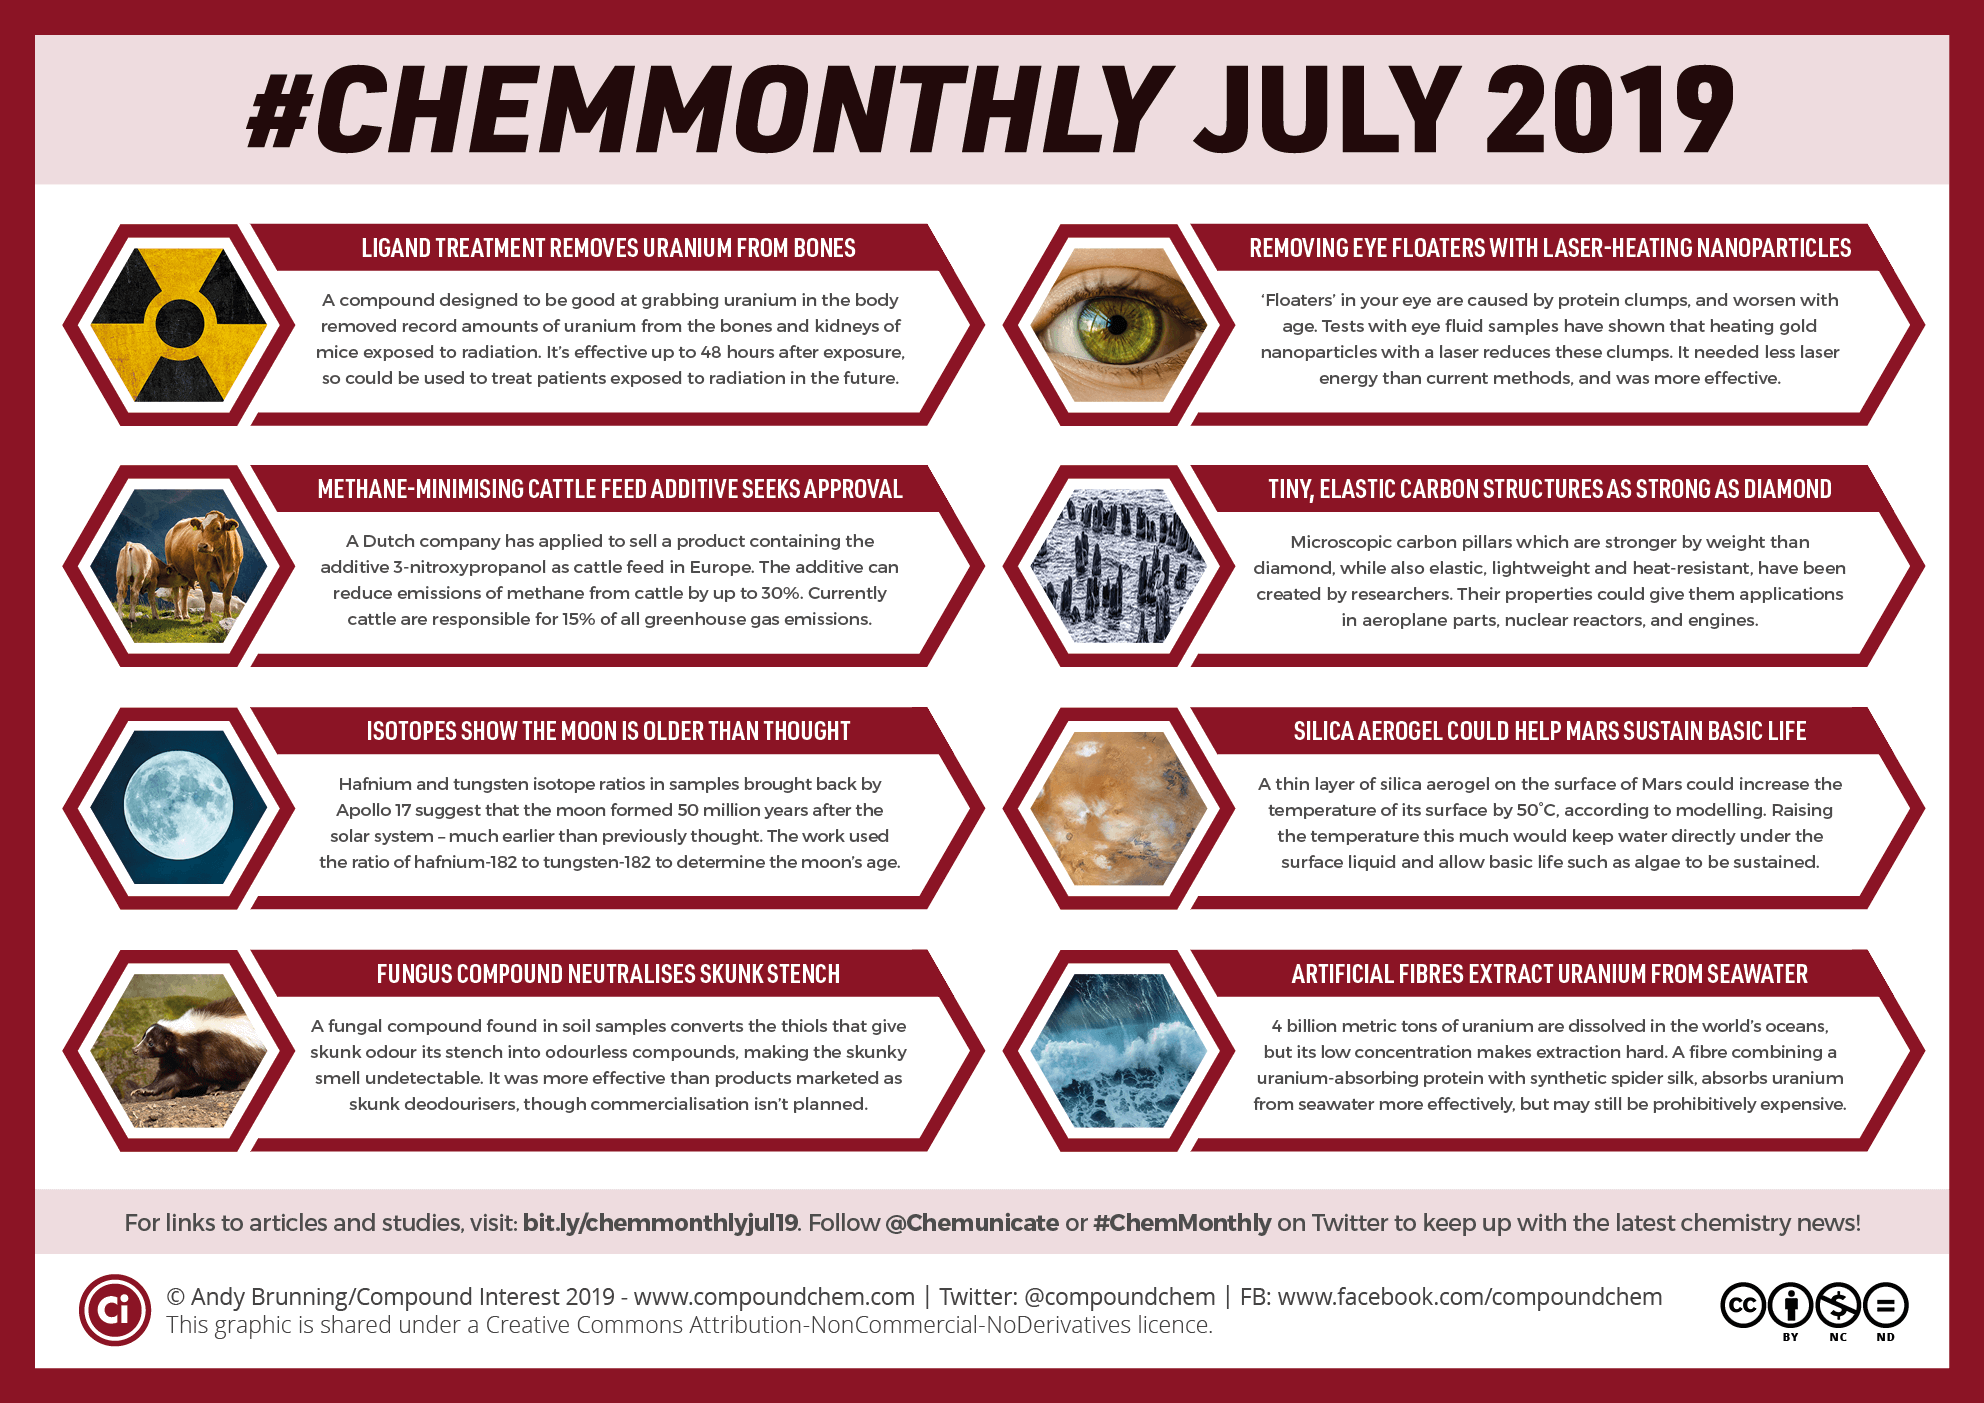 #ChemMonthly July 2019: The age of the Moon and combatting skunk stench